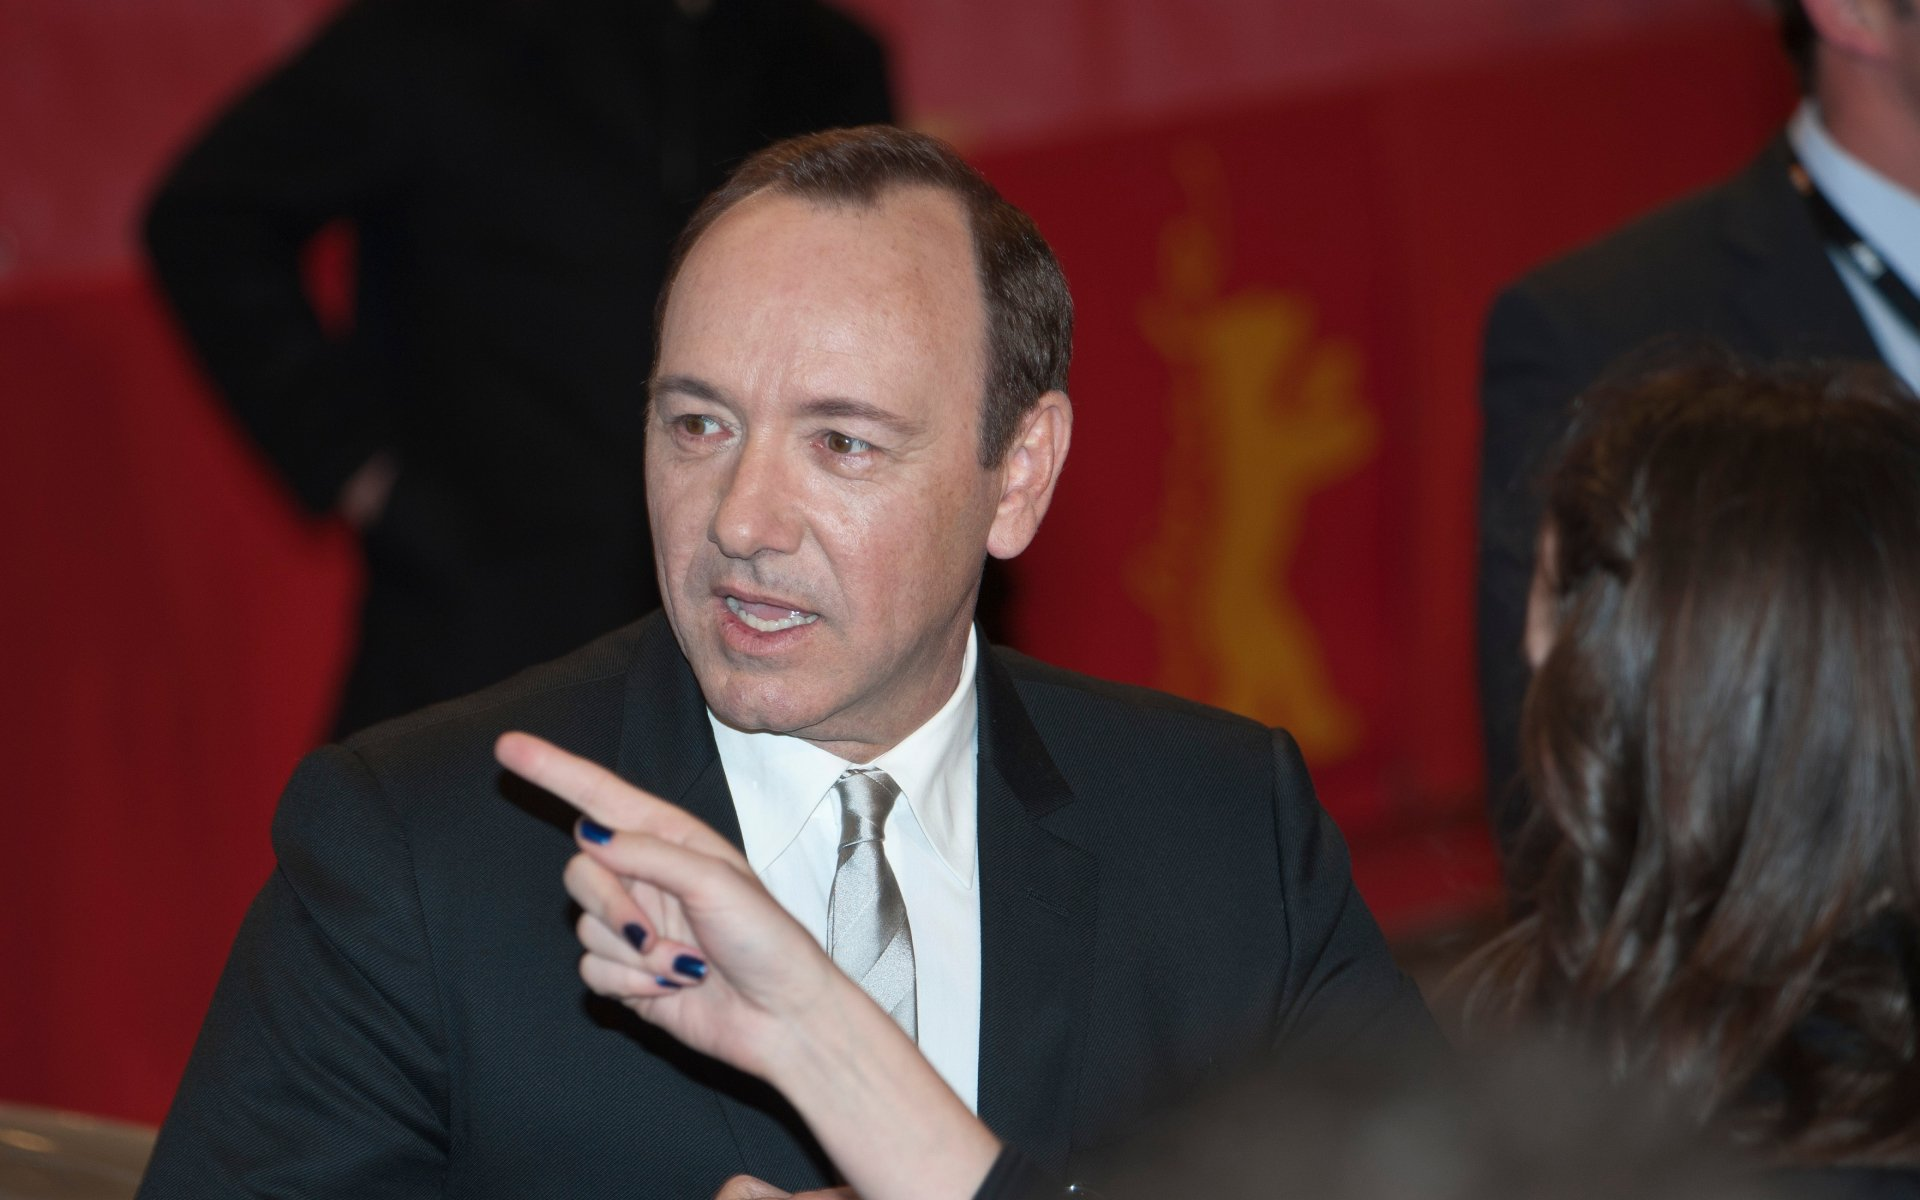 Kevin spacey full hd wallpaper and background image - Spacey wallpaper ...